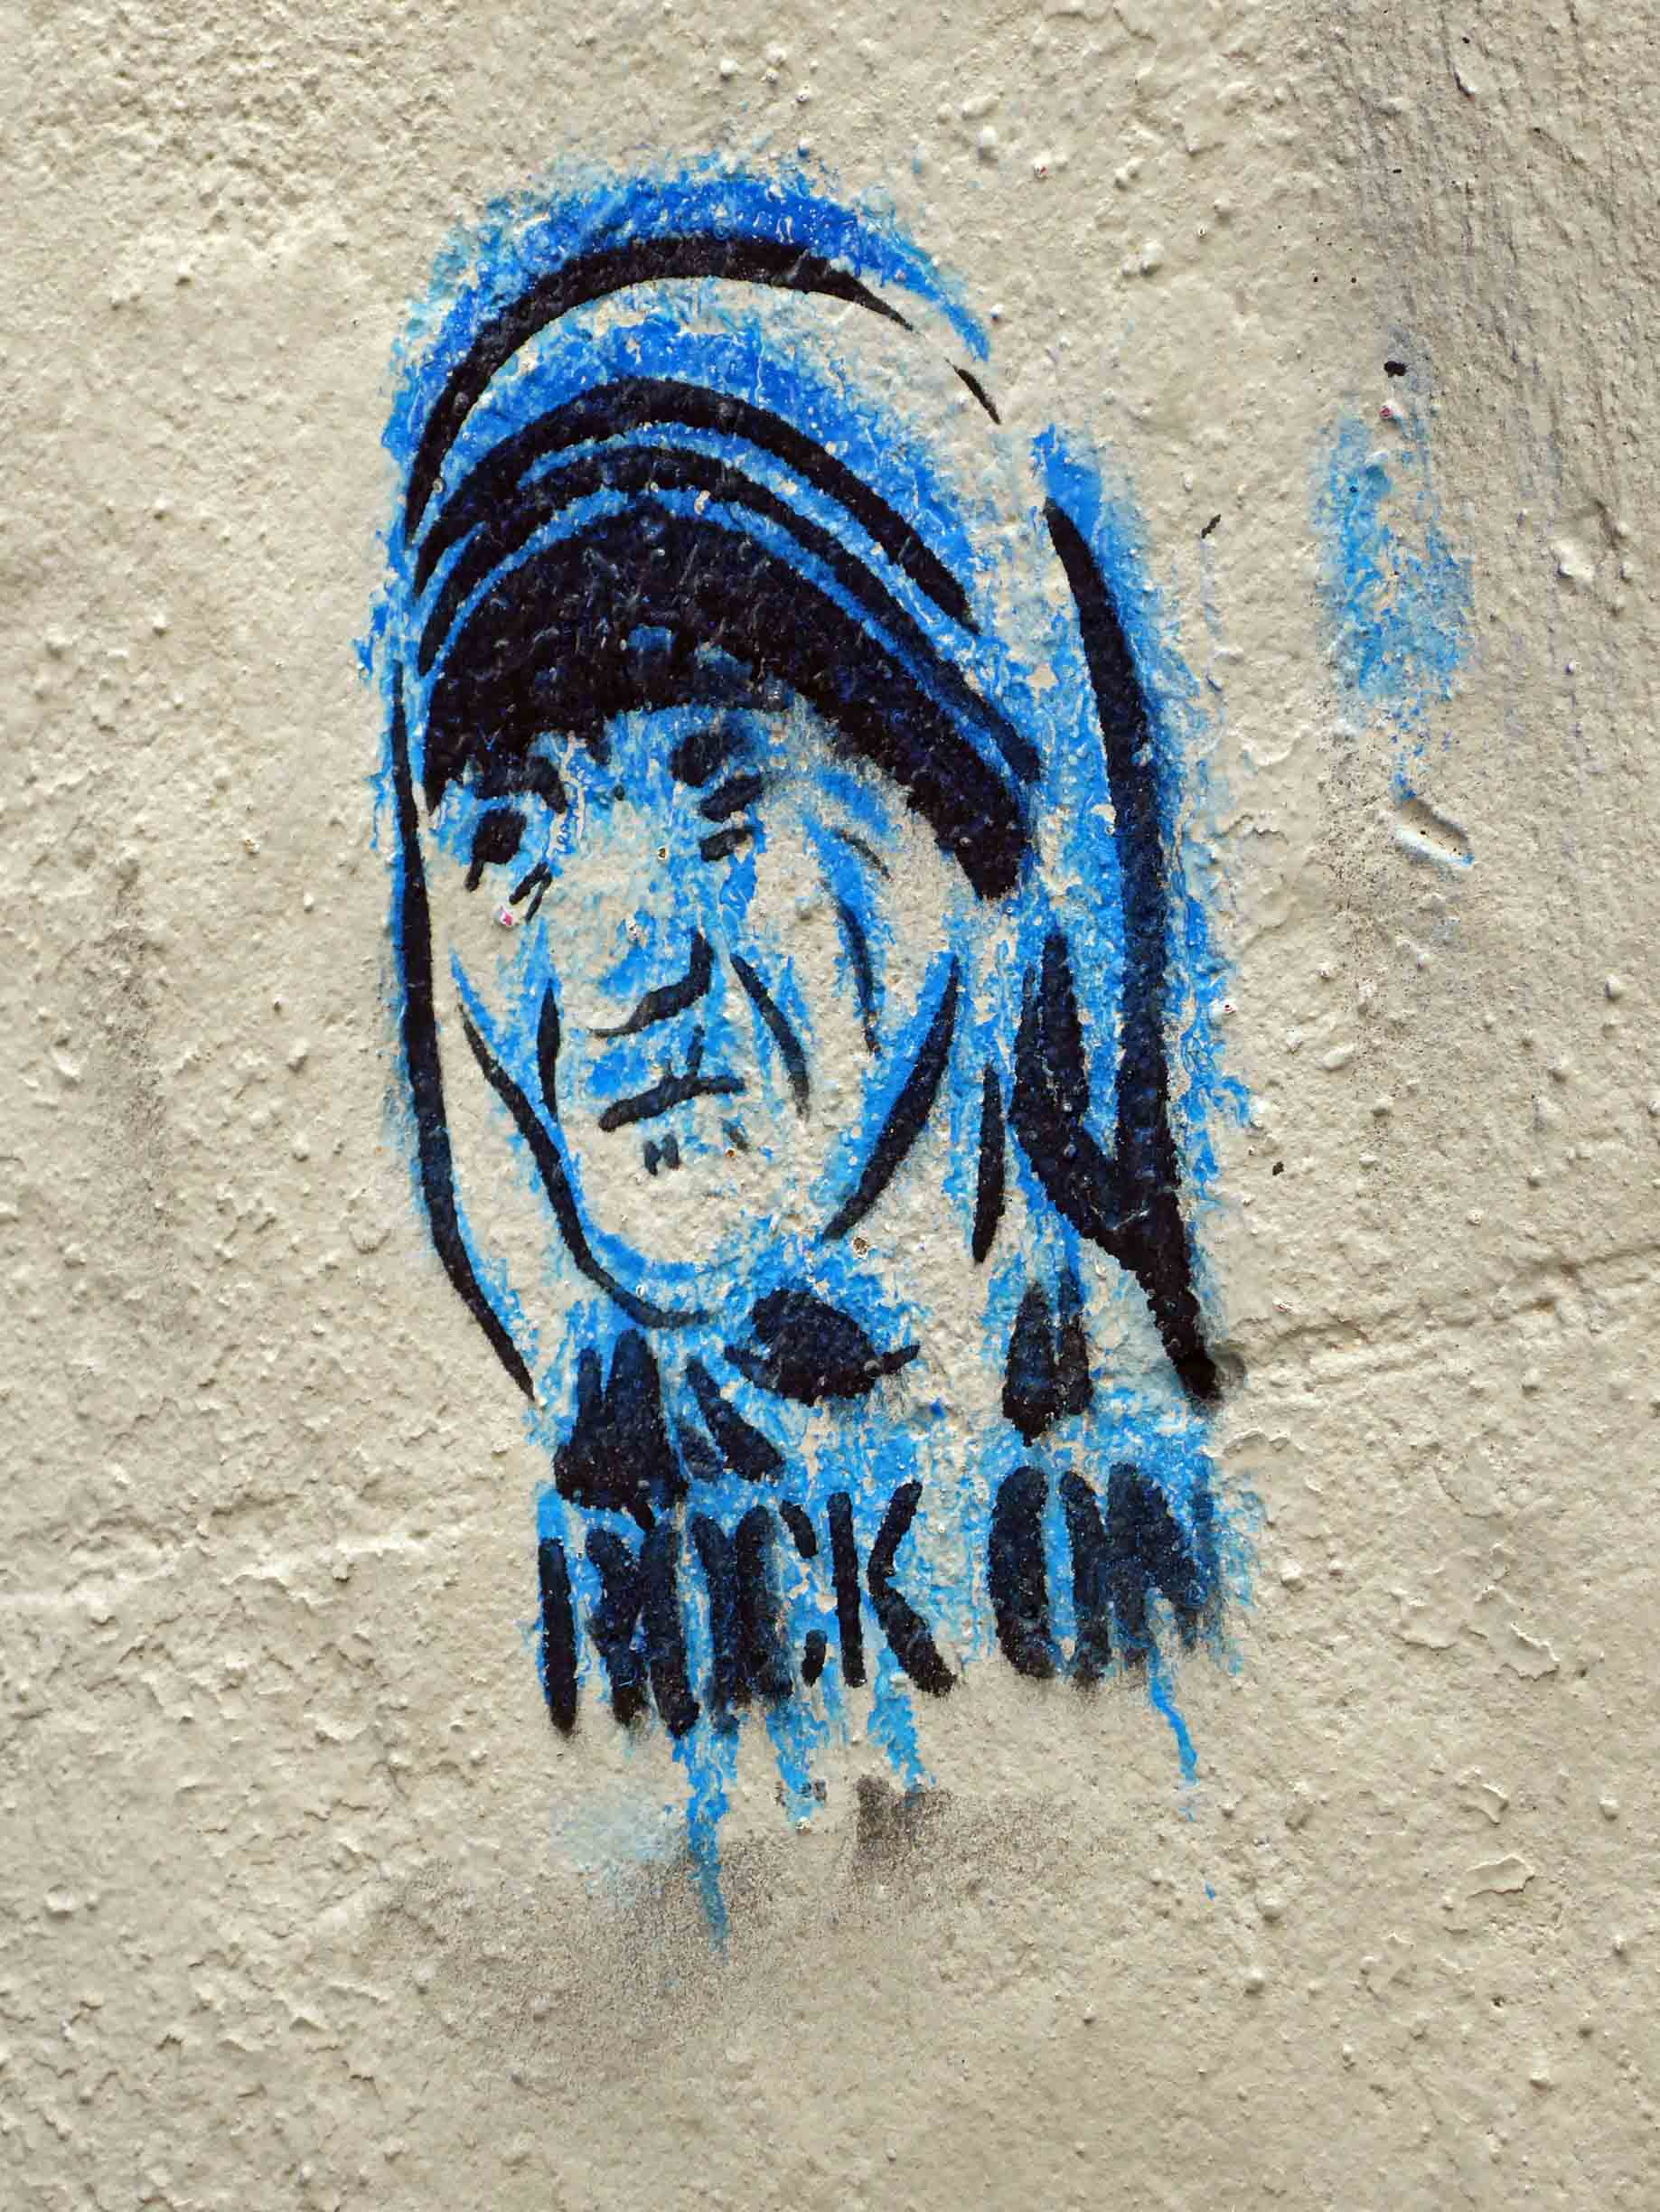 Small mural with face of Mother Teresa